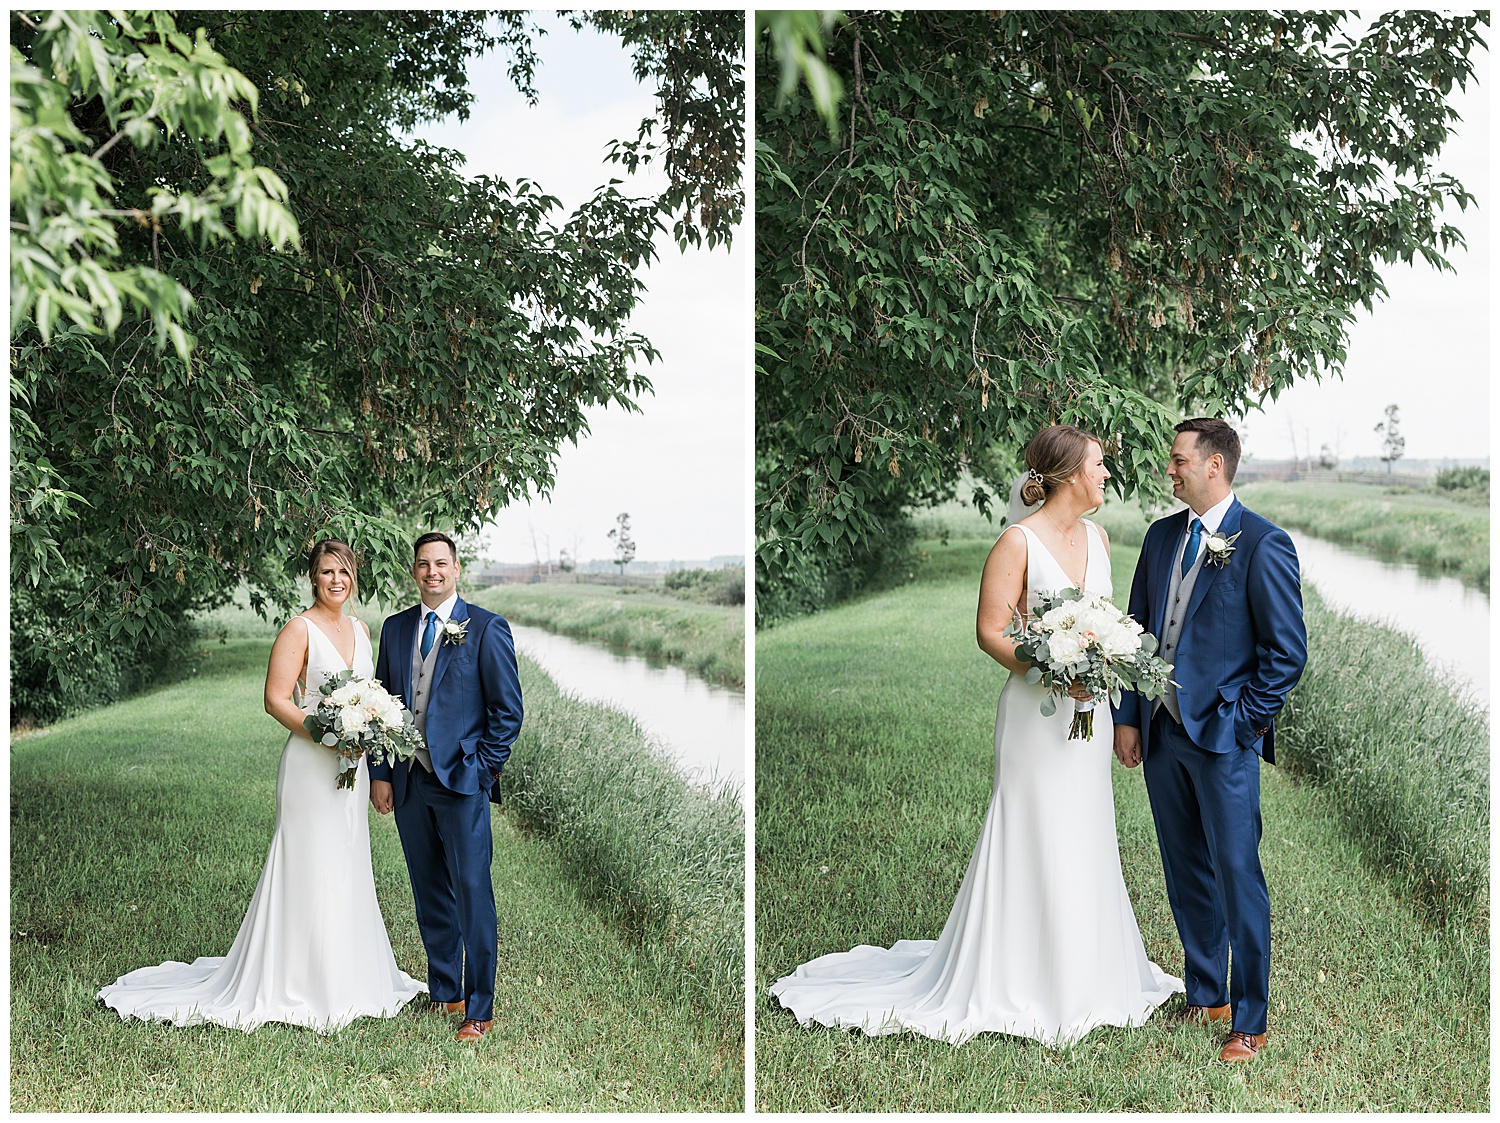 Real Alberta Farm Wedding Bride & Groom